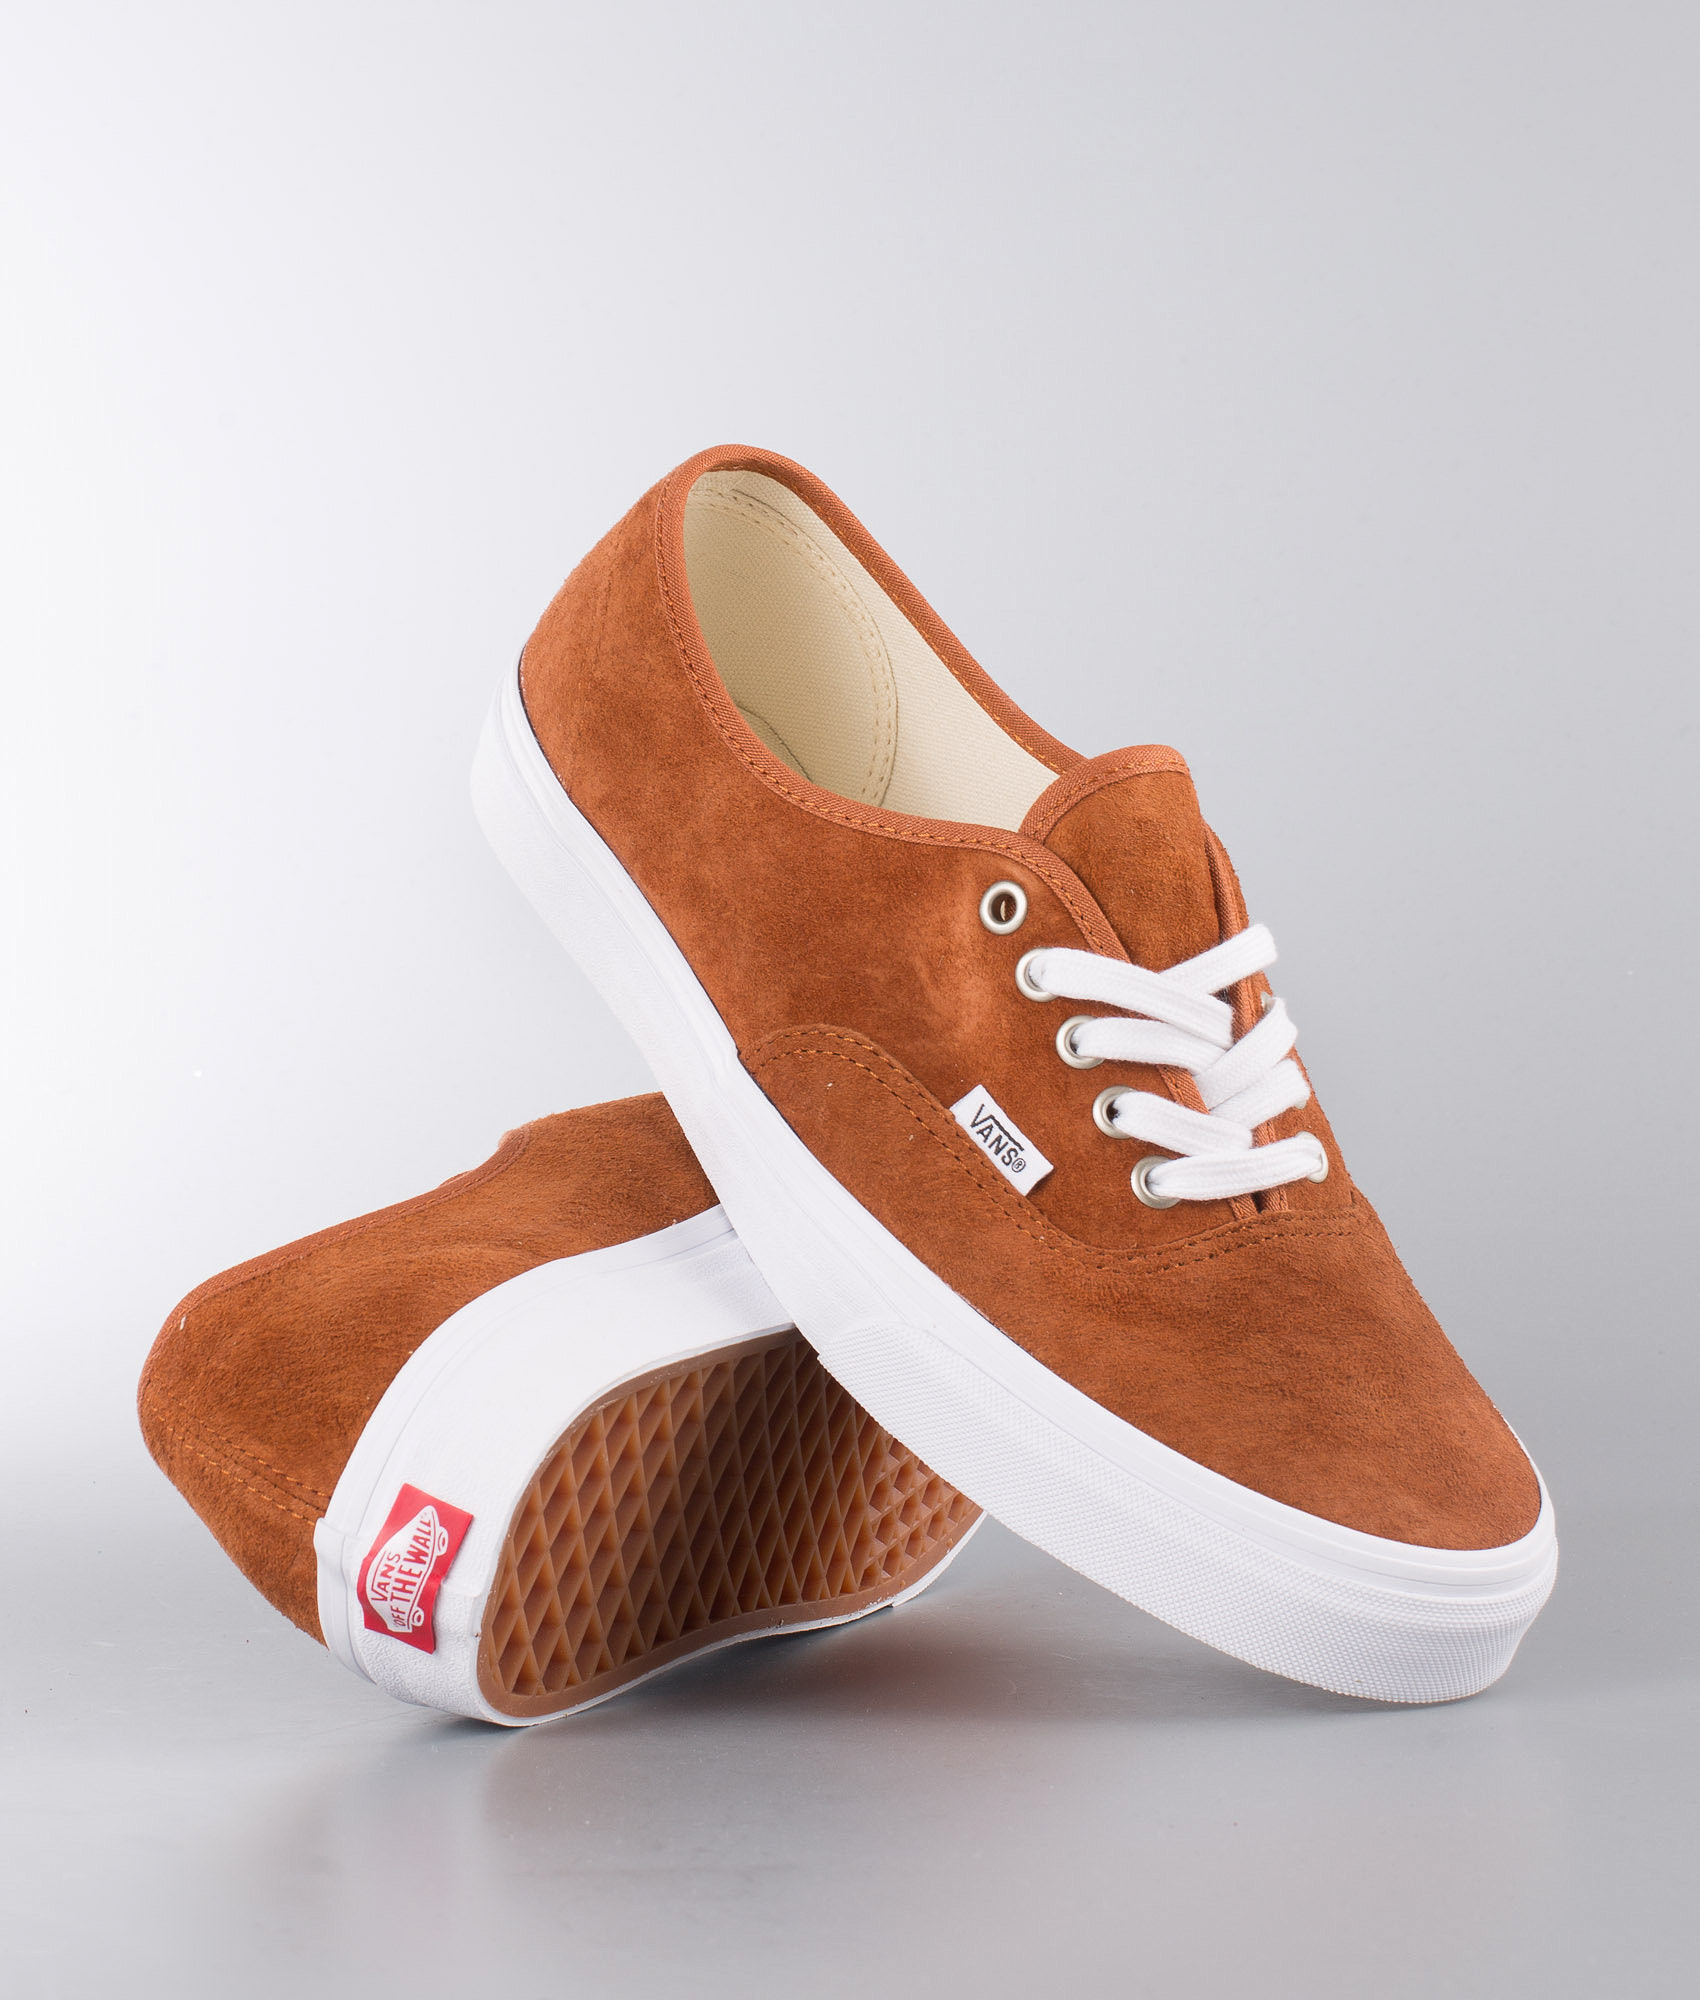 0abe7a6cae Vans Authentic Shoes (Pig Suede) Leather Brown True White ...